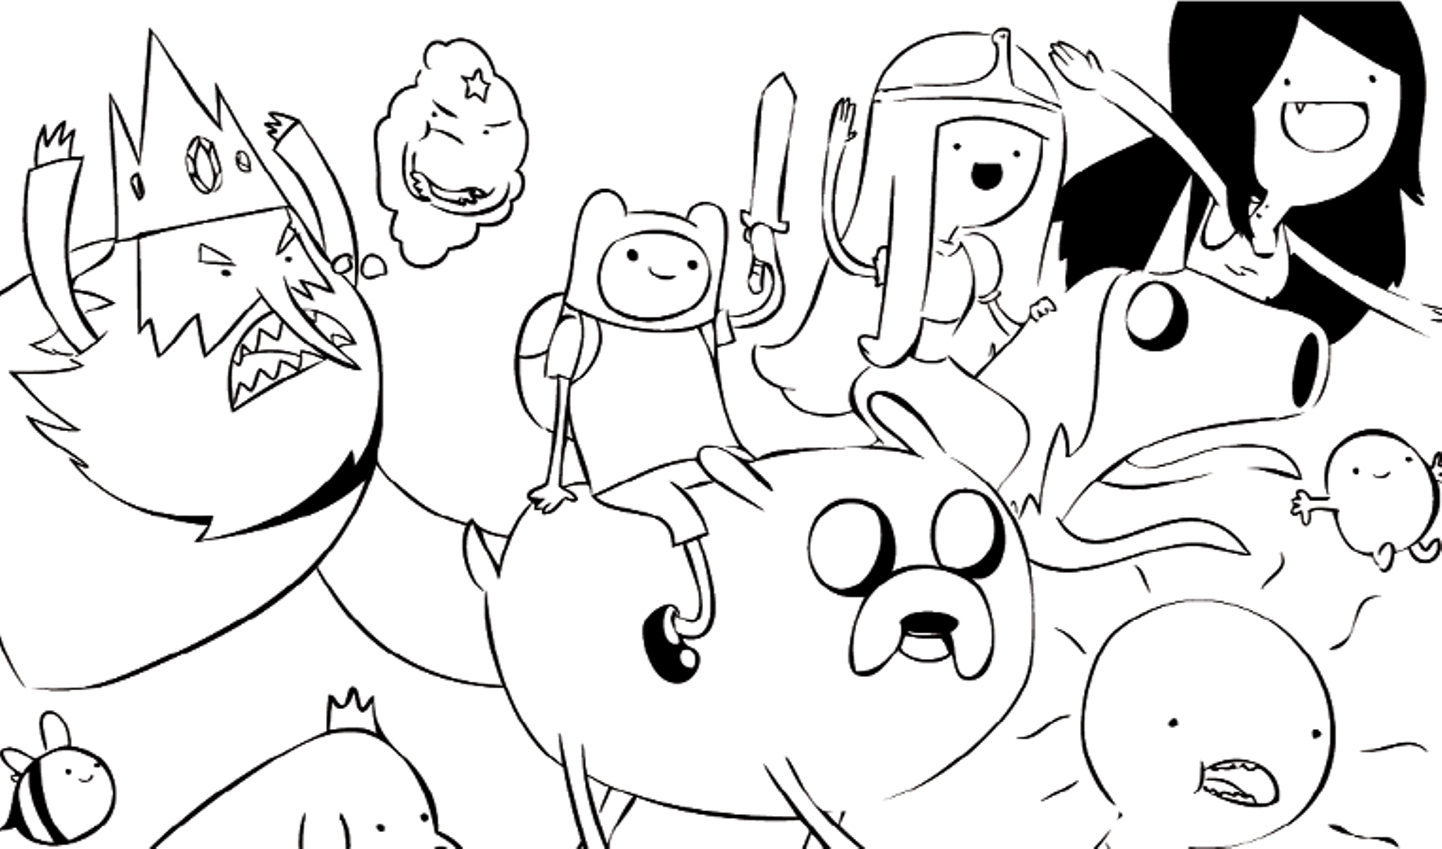 Uncategorized Adventure Time Coloring Pages To Print adventure time coloring pages best for kids printable